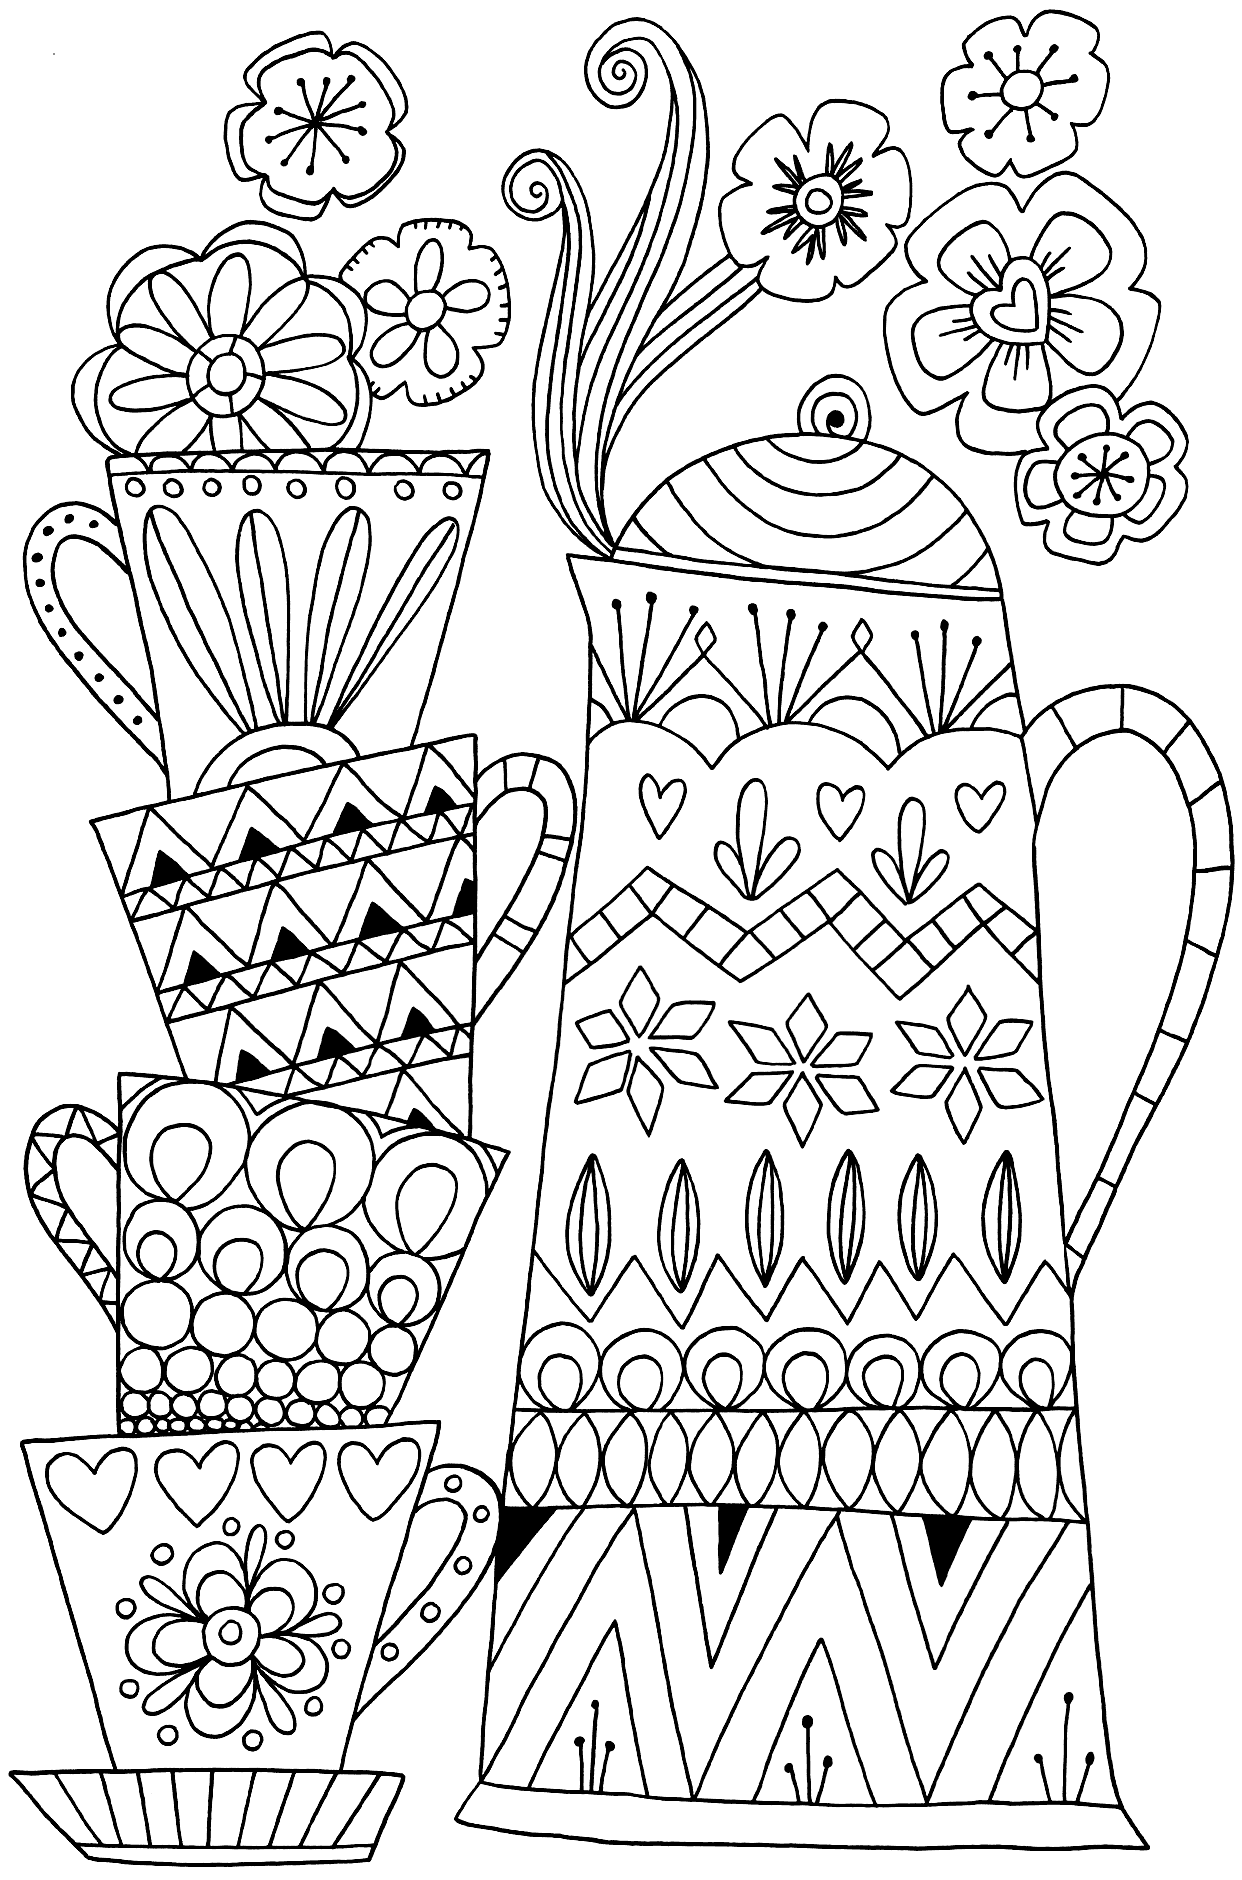 Stacked Coffee Cups Coloring Page coloring.rocks